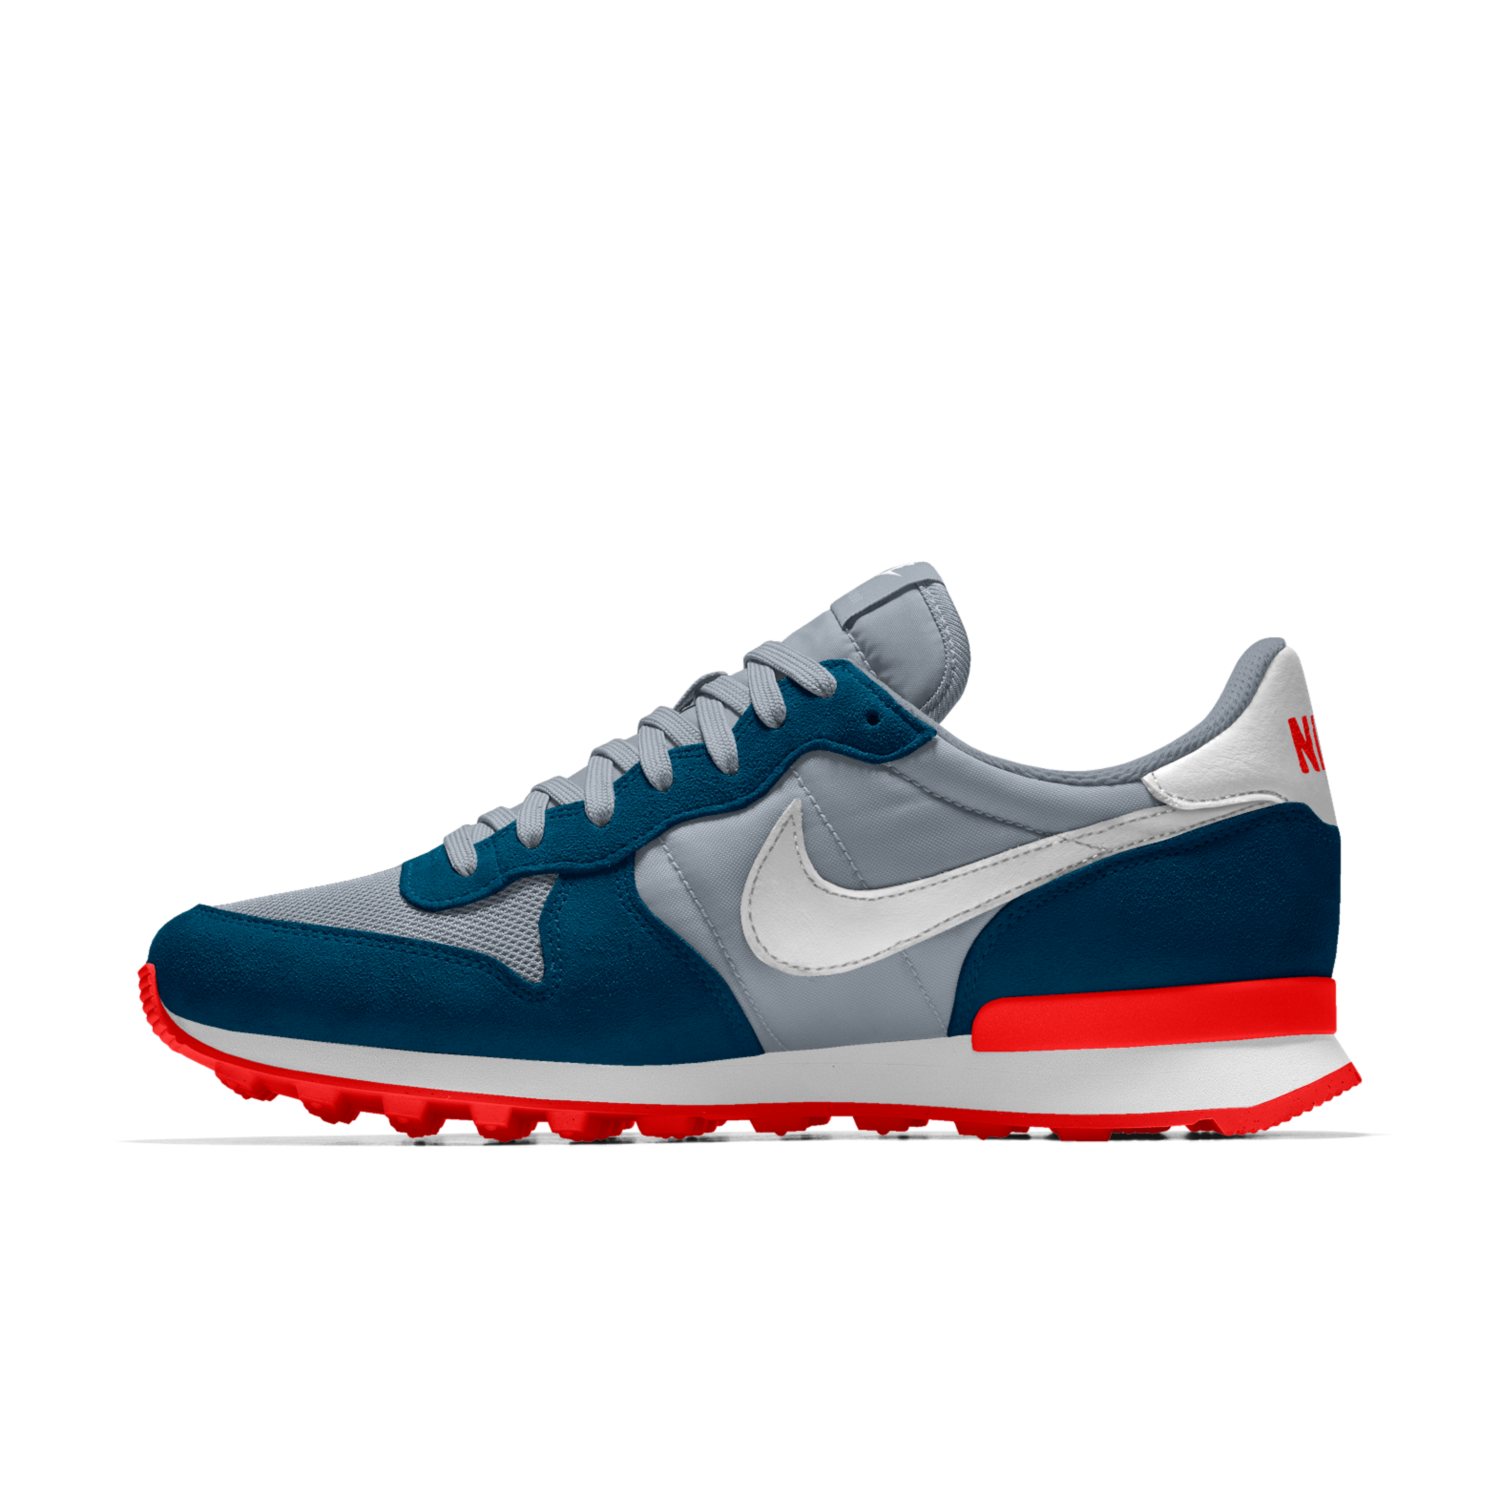 new arrival 00cd8 faaf3 Nike Internationalist iD Shoe. Nike.com UK